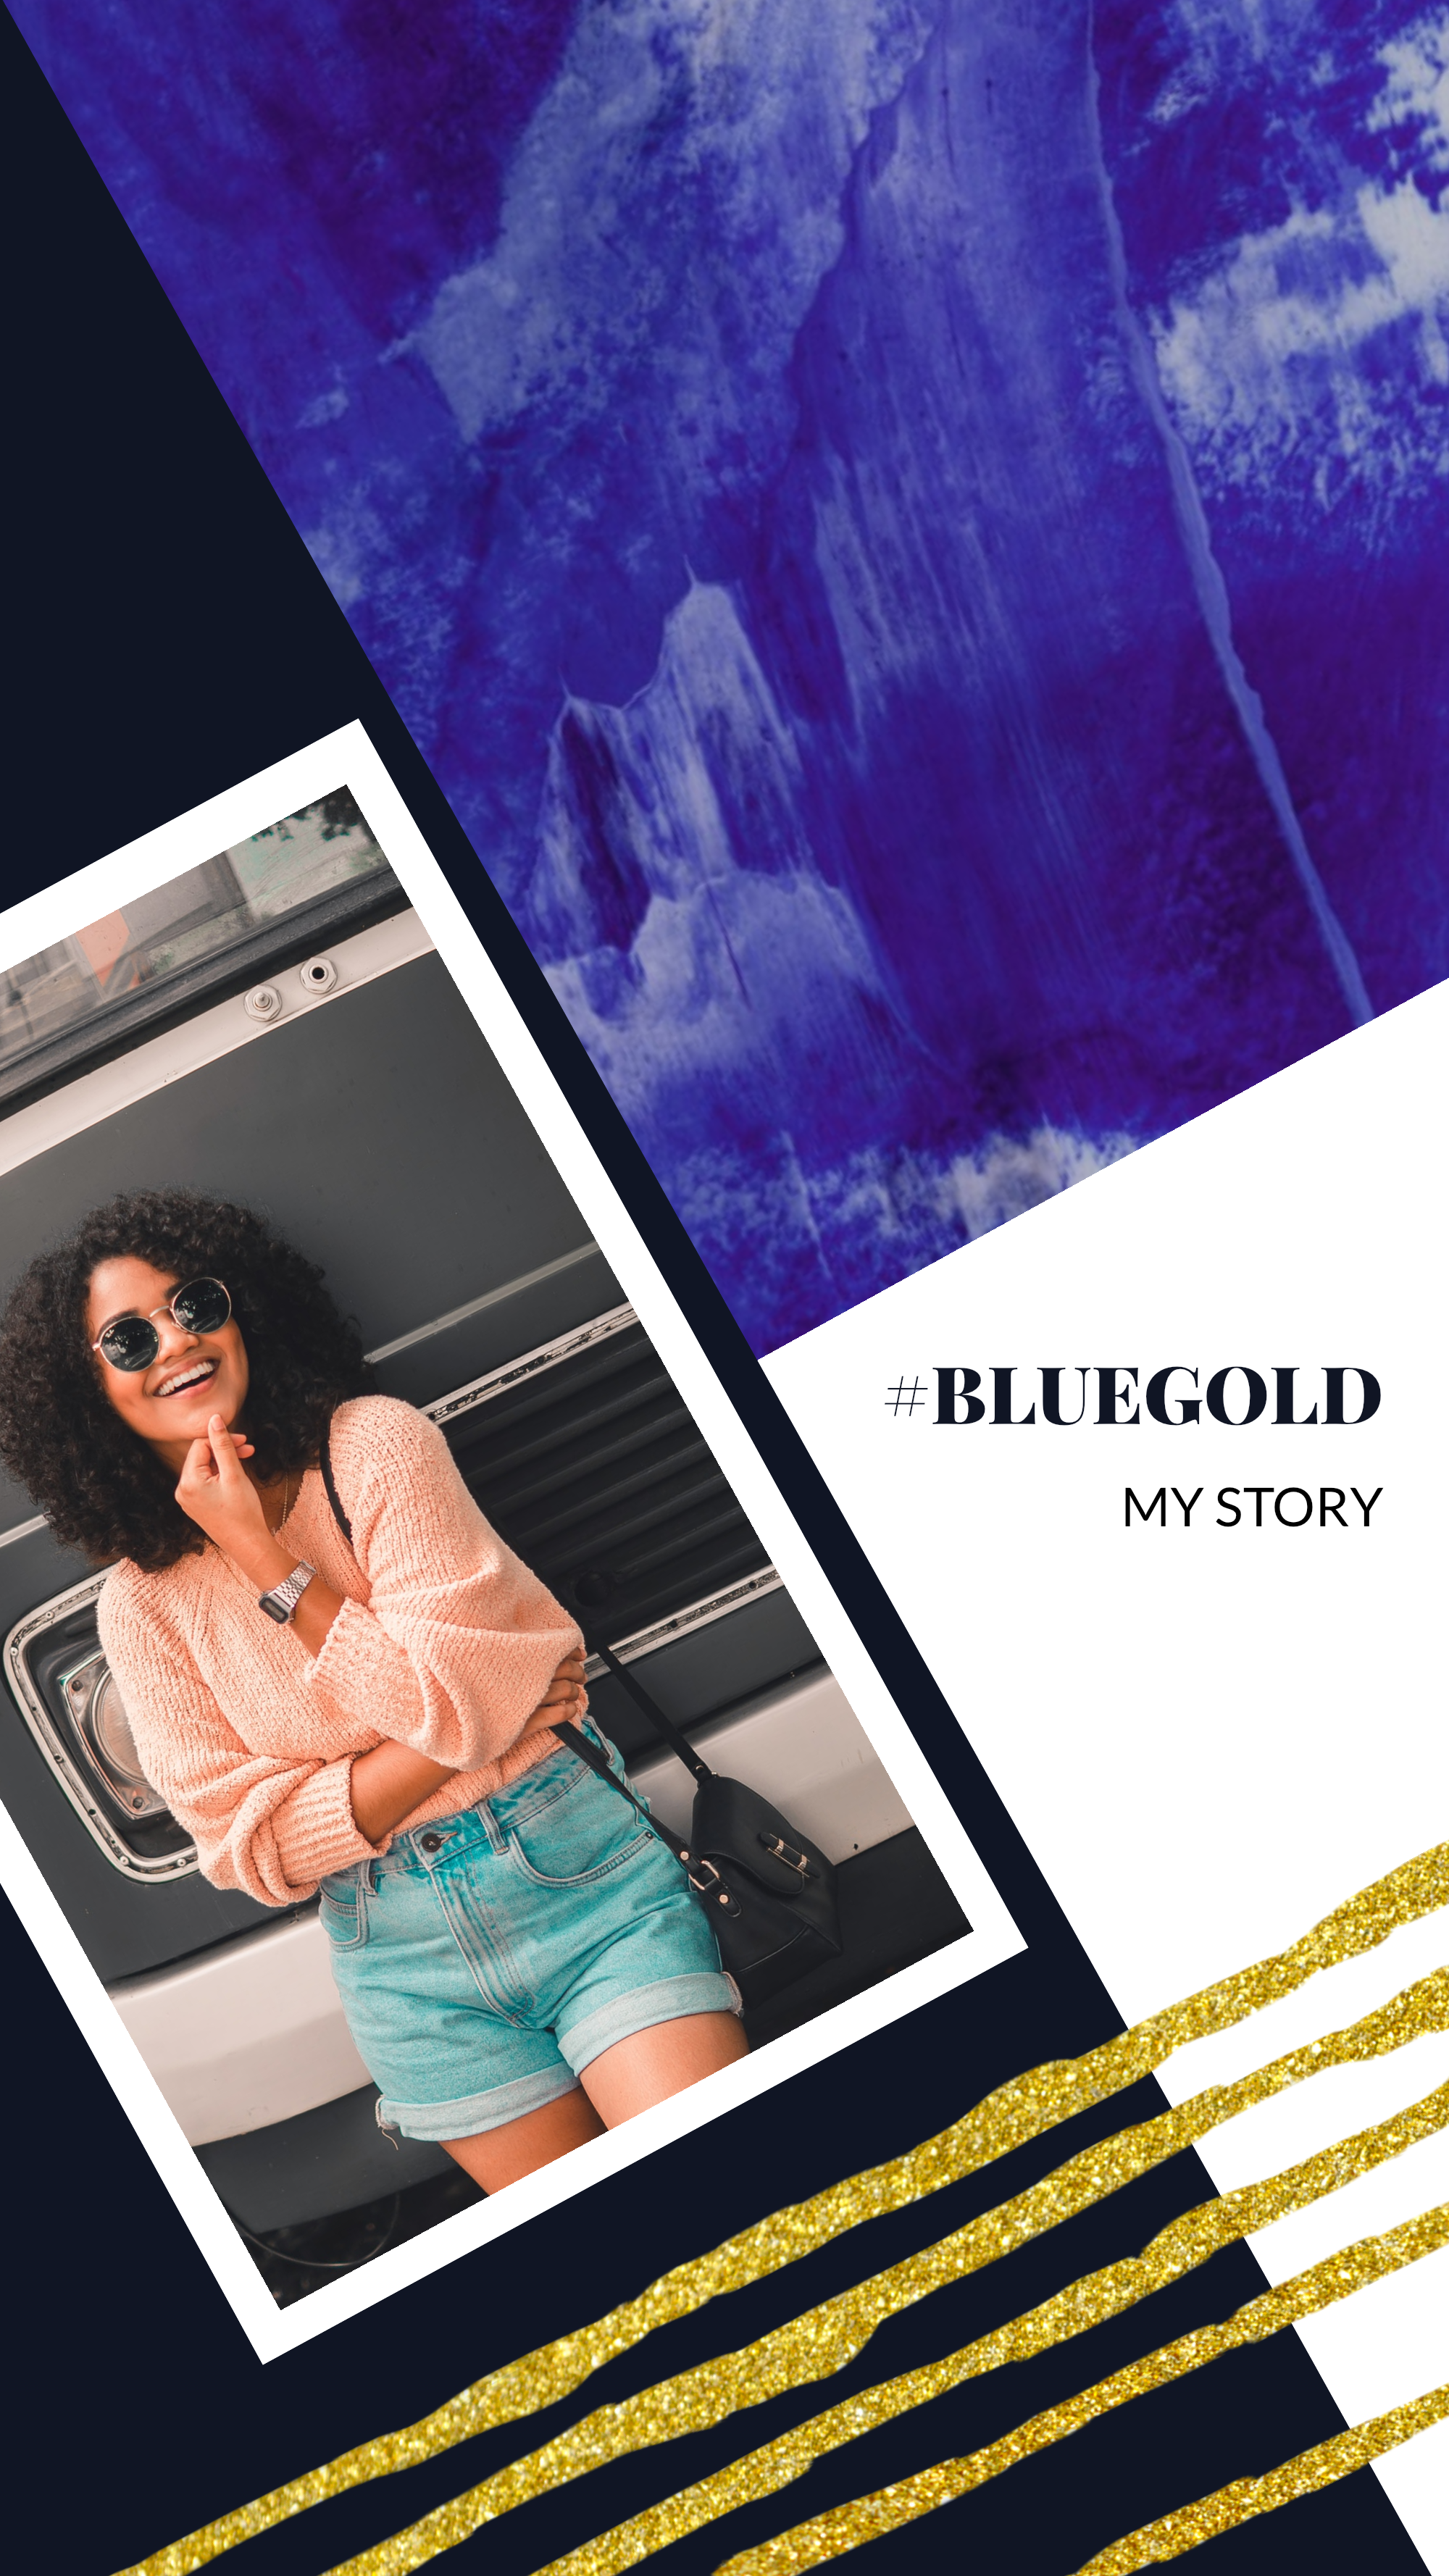 #bluegold collection - #BLUEGOLD MY STORY Instagram Story Template